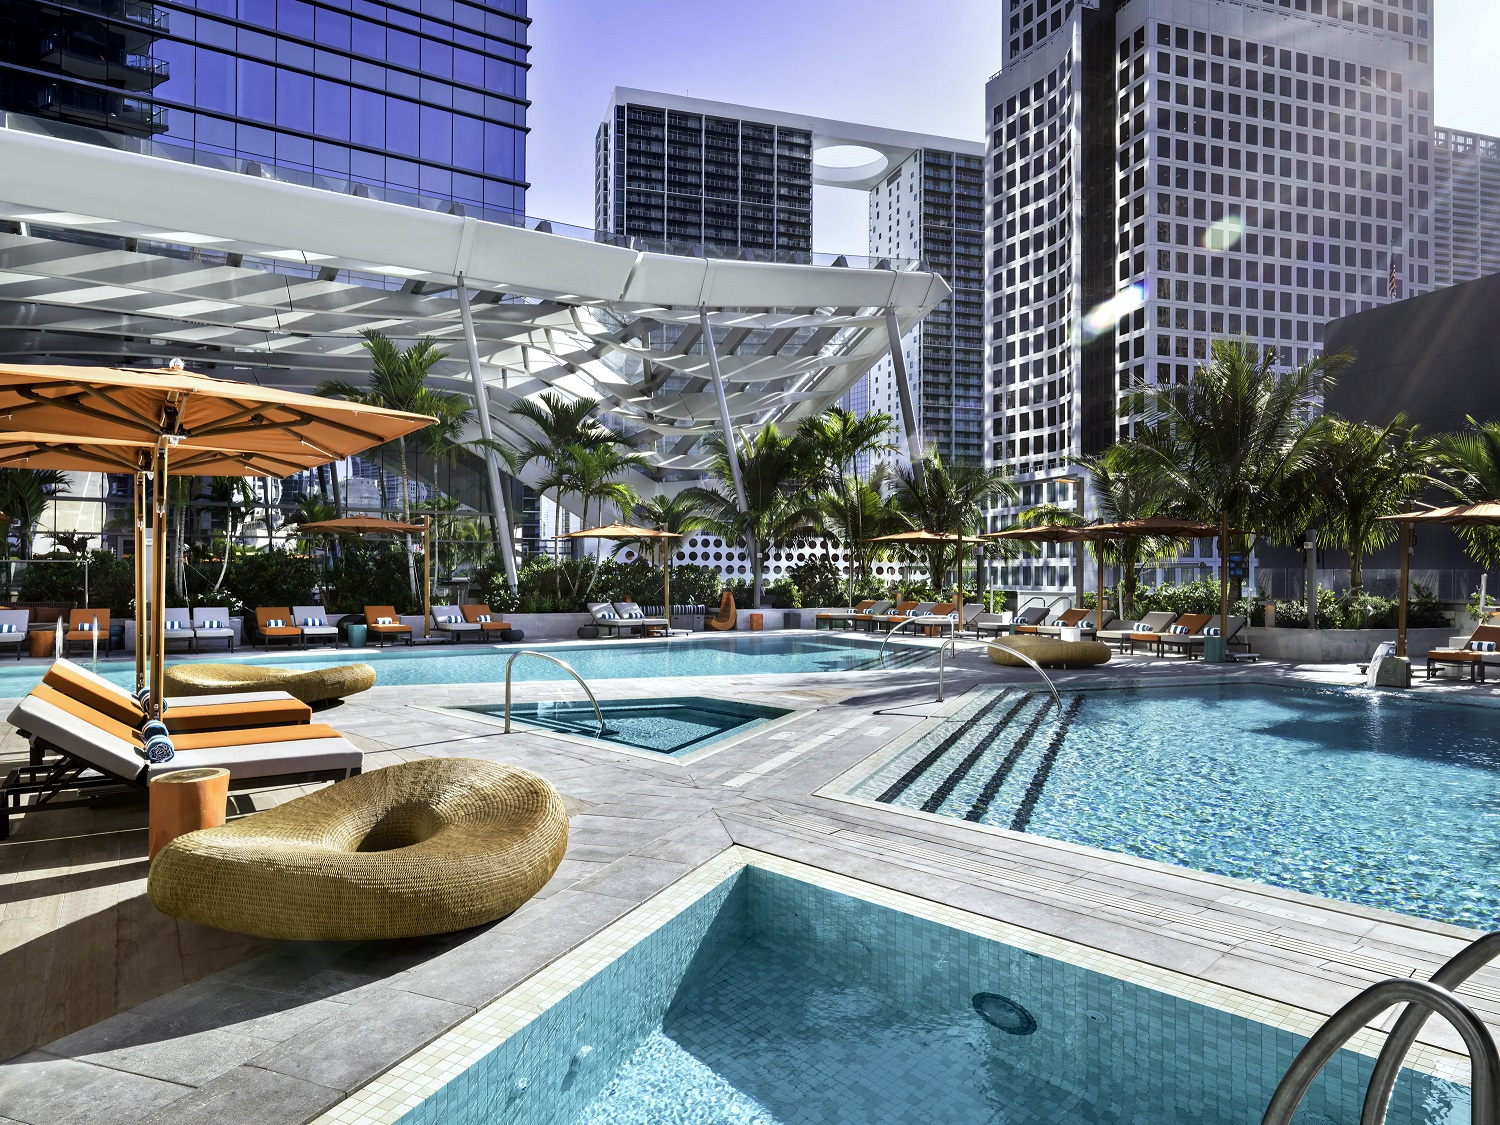 East Hotel Miami Brickell